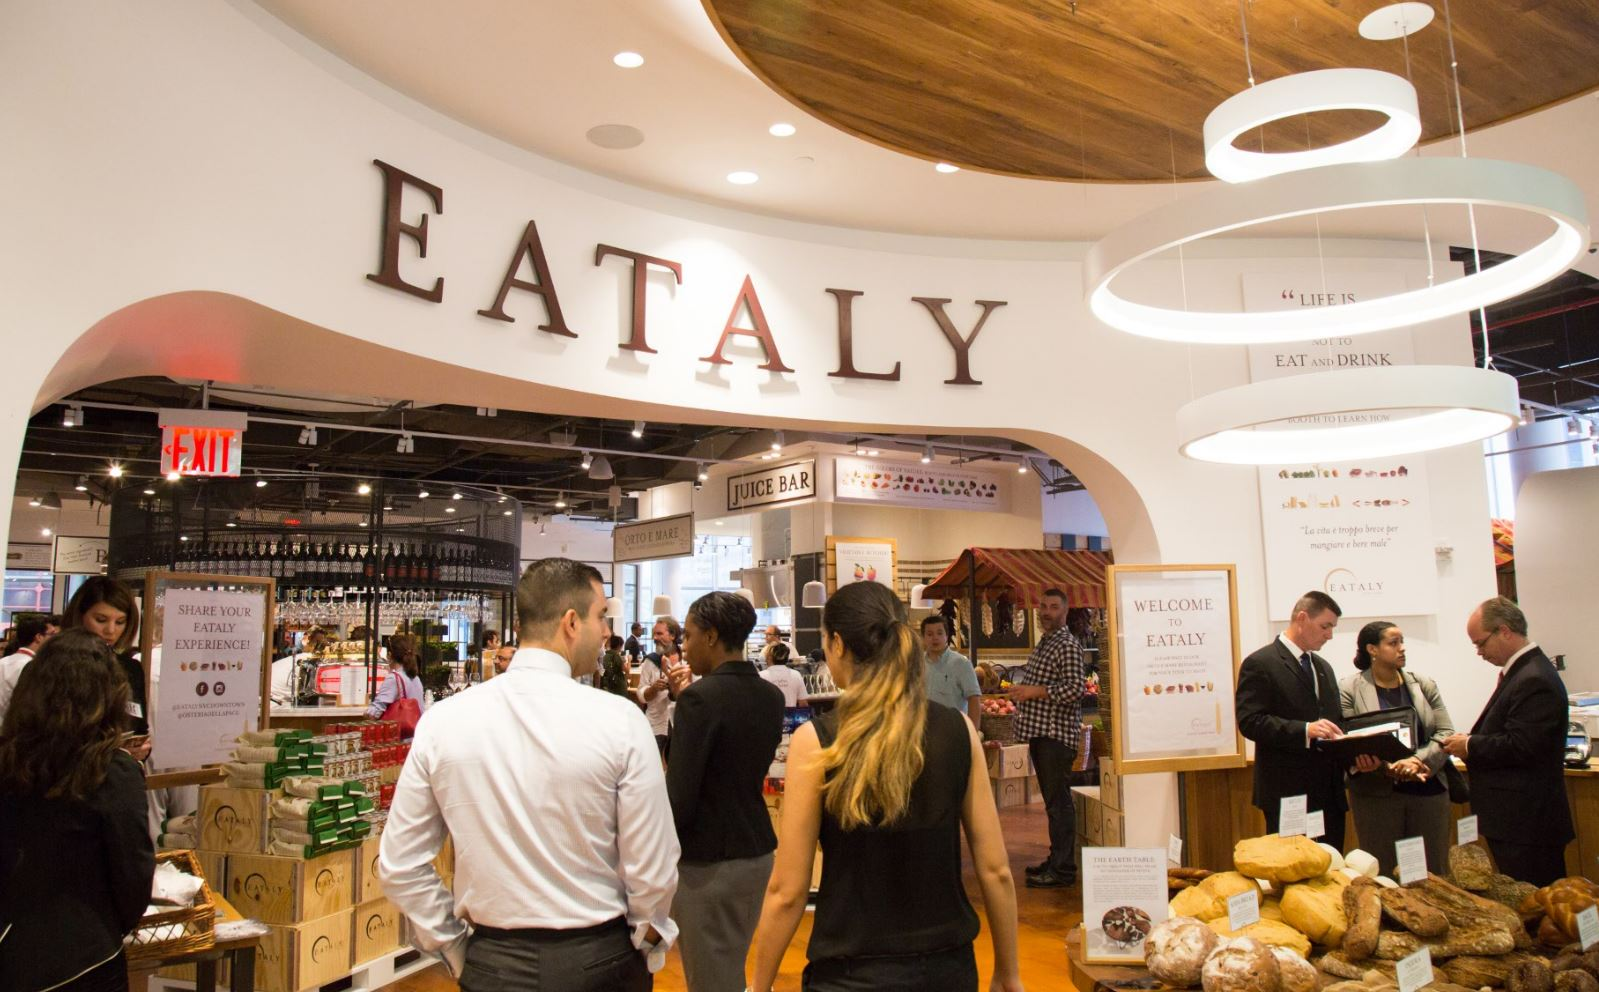 Eataly NYC Downtown to open Aug. 11 in 4 World Trade